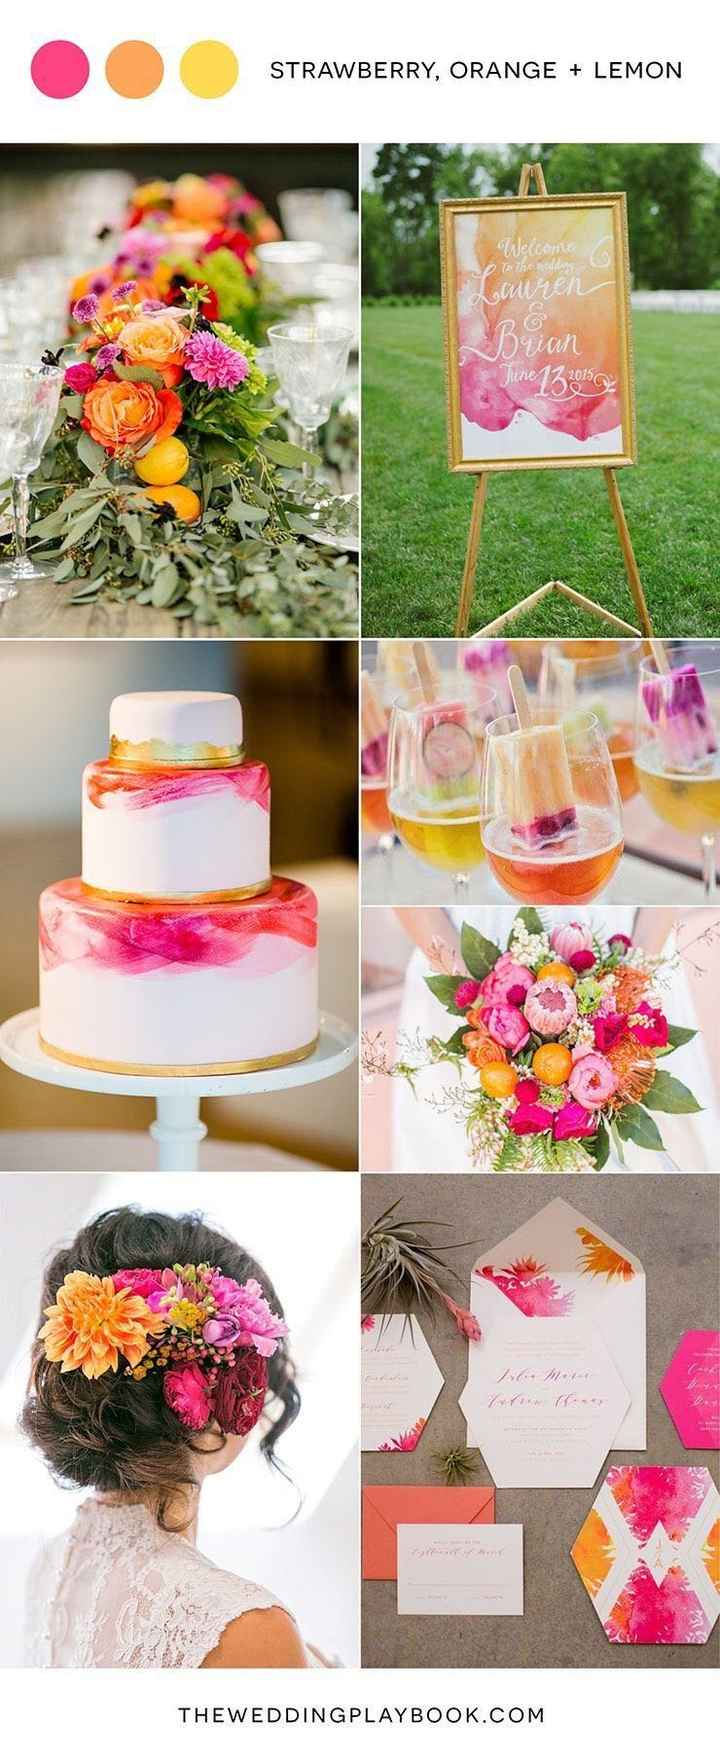 Calling all June, July, August, and September Brides: What is your Summer Wedding Inspiration? - 1